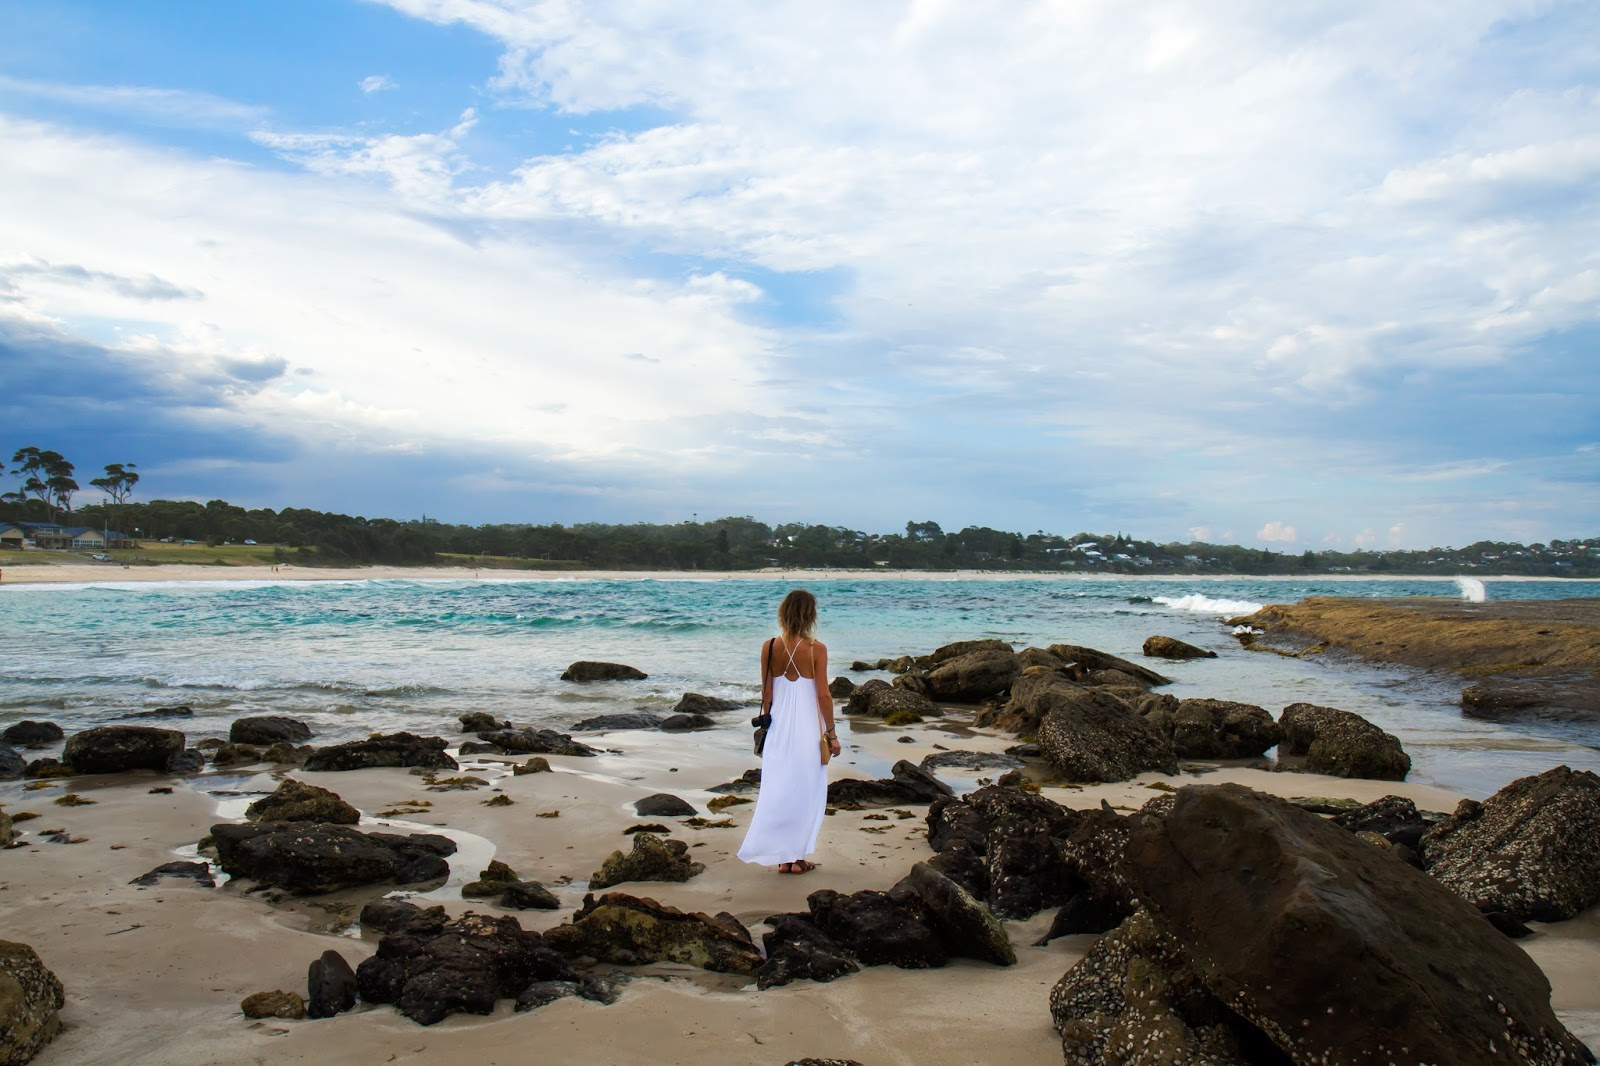 fashion and travel blogger, Alison Hutchinson, at Mollymook Beach in NSW, Australia